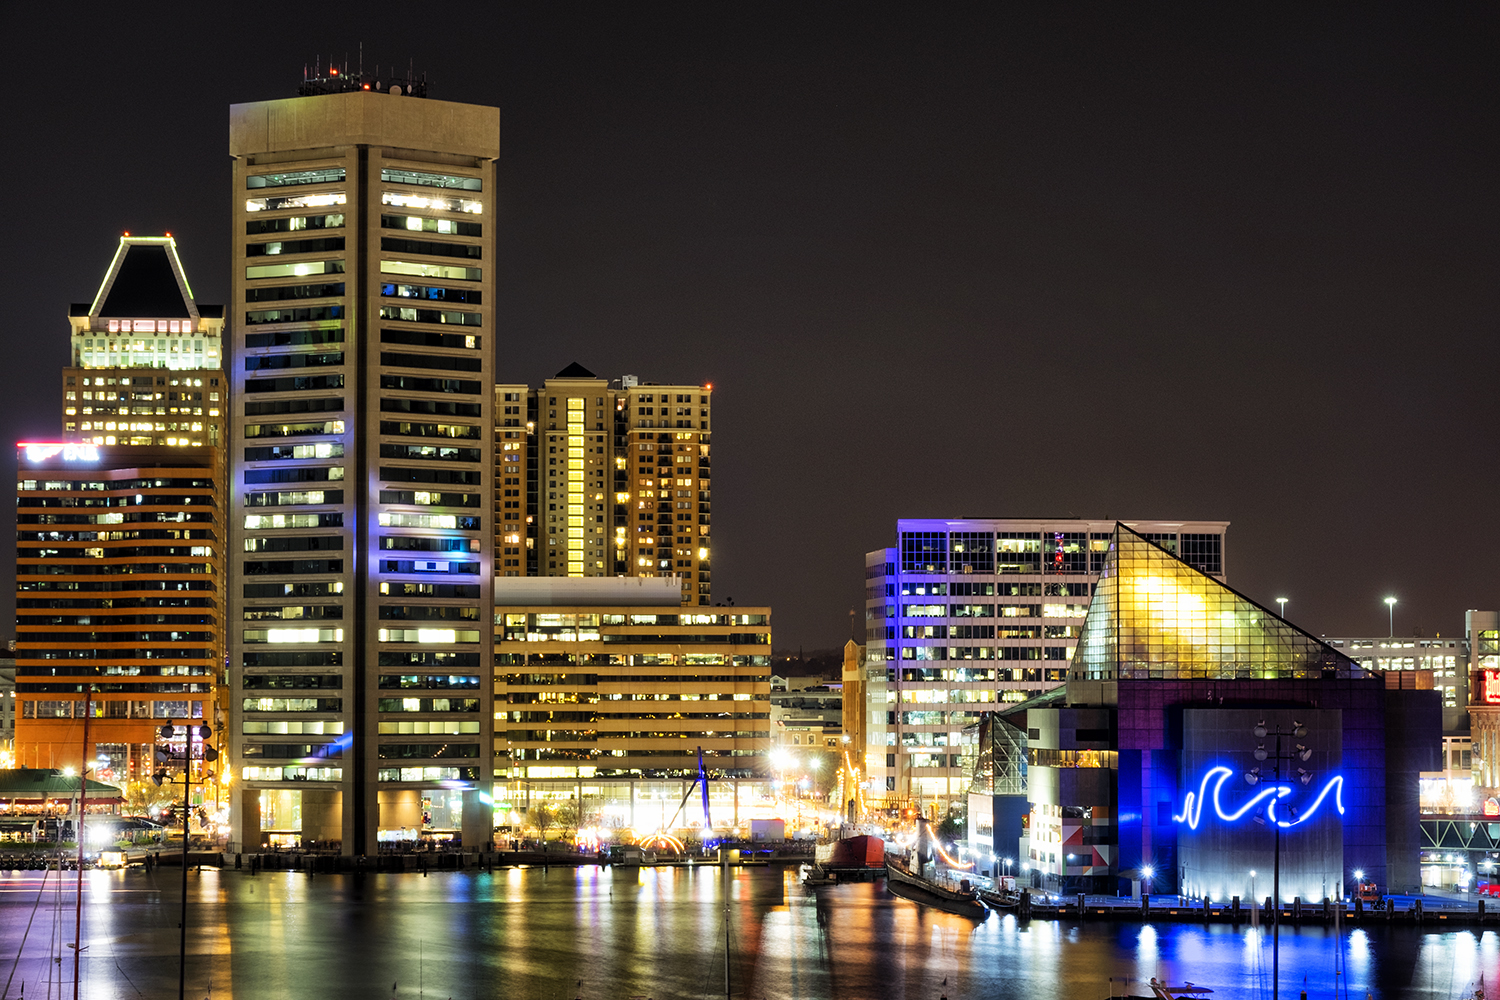 Baltimore Harbor, March Evening